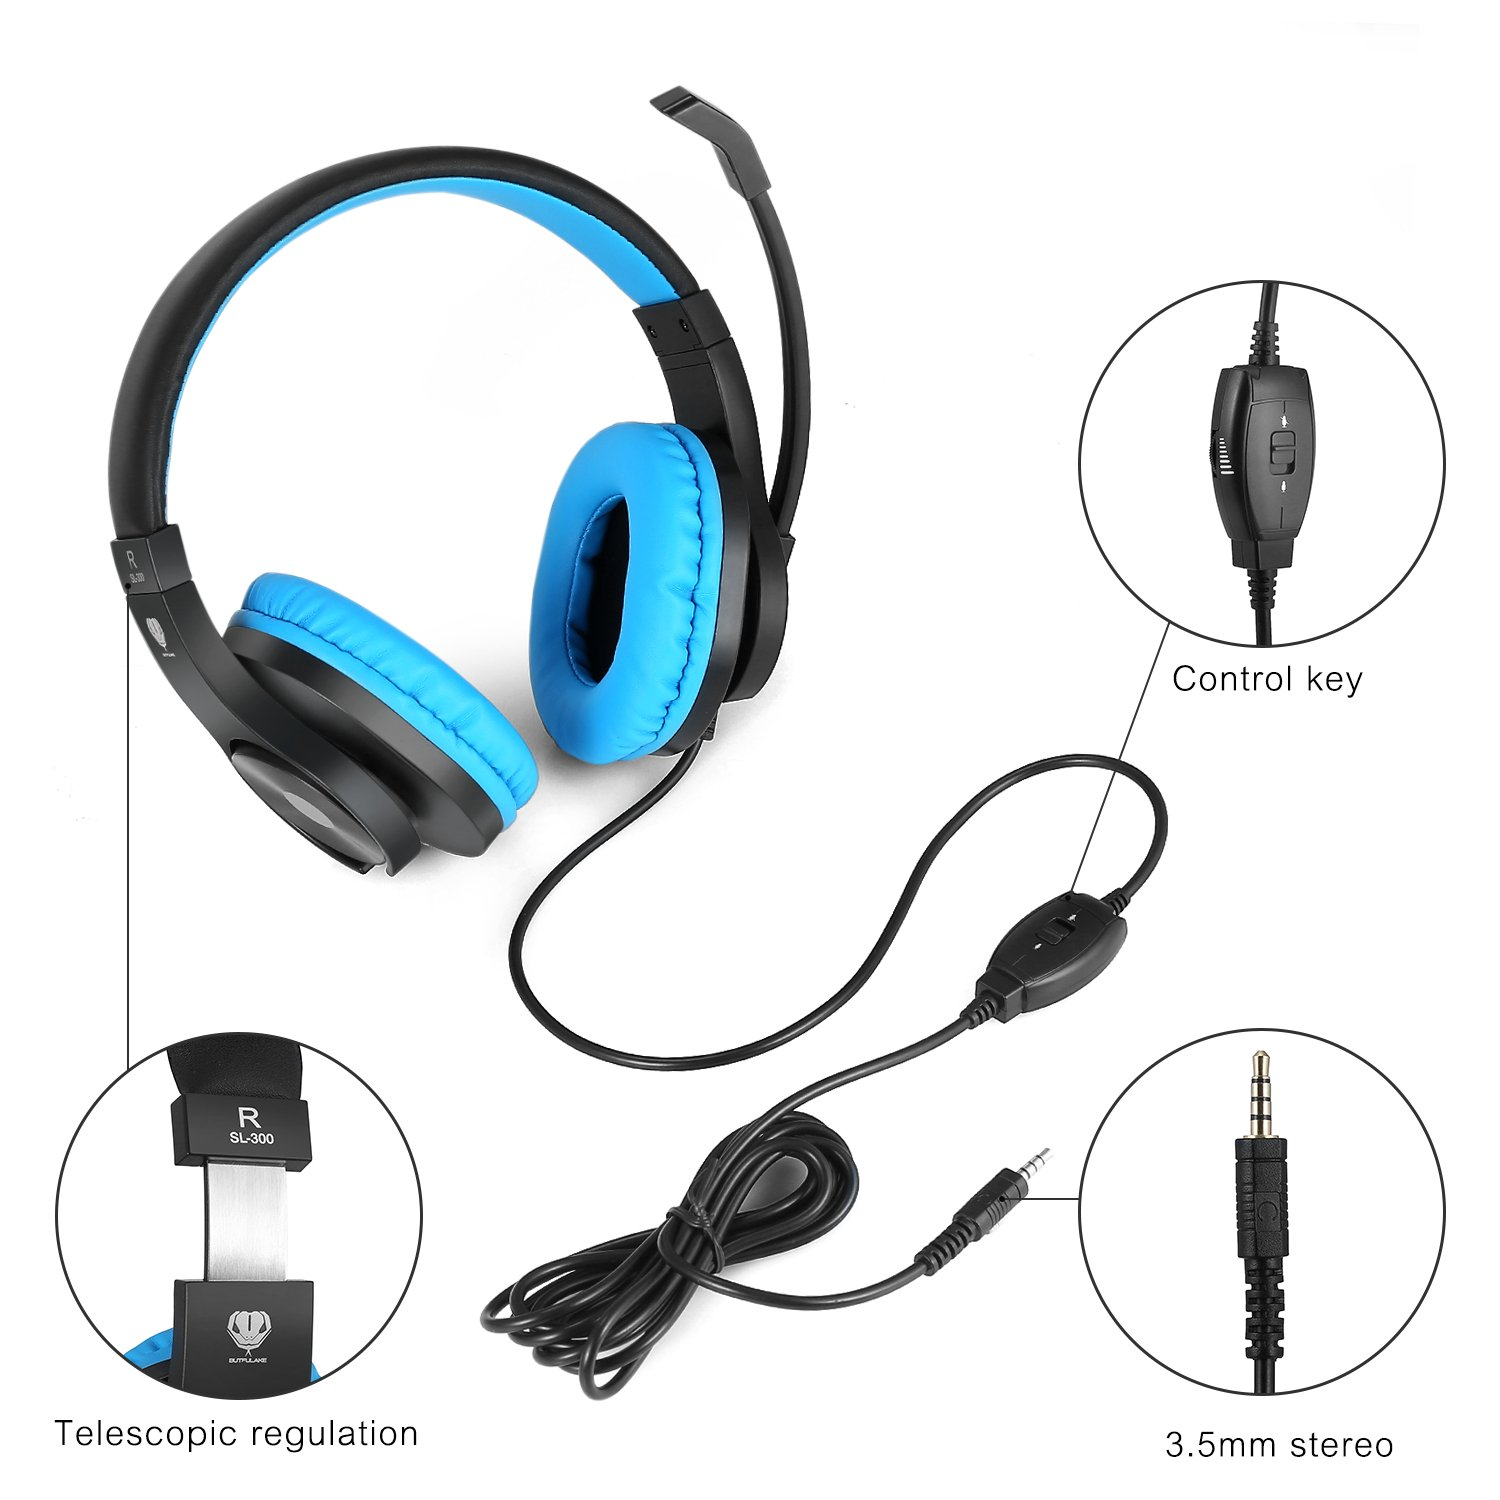 DIWUER Stereo Wired Gaming Headset for PS4 Xbox One 3.5mm Bass Over-Ear Headphones with Mic Noise Isolation for Laptop PC Mac iPad Phones (Black Blue) by DIWUER (Image #7)